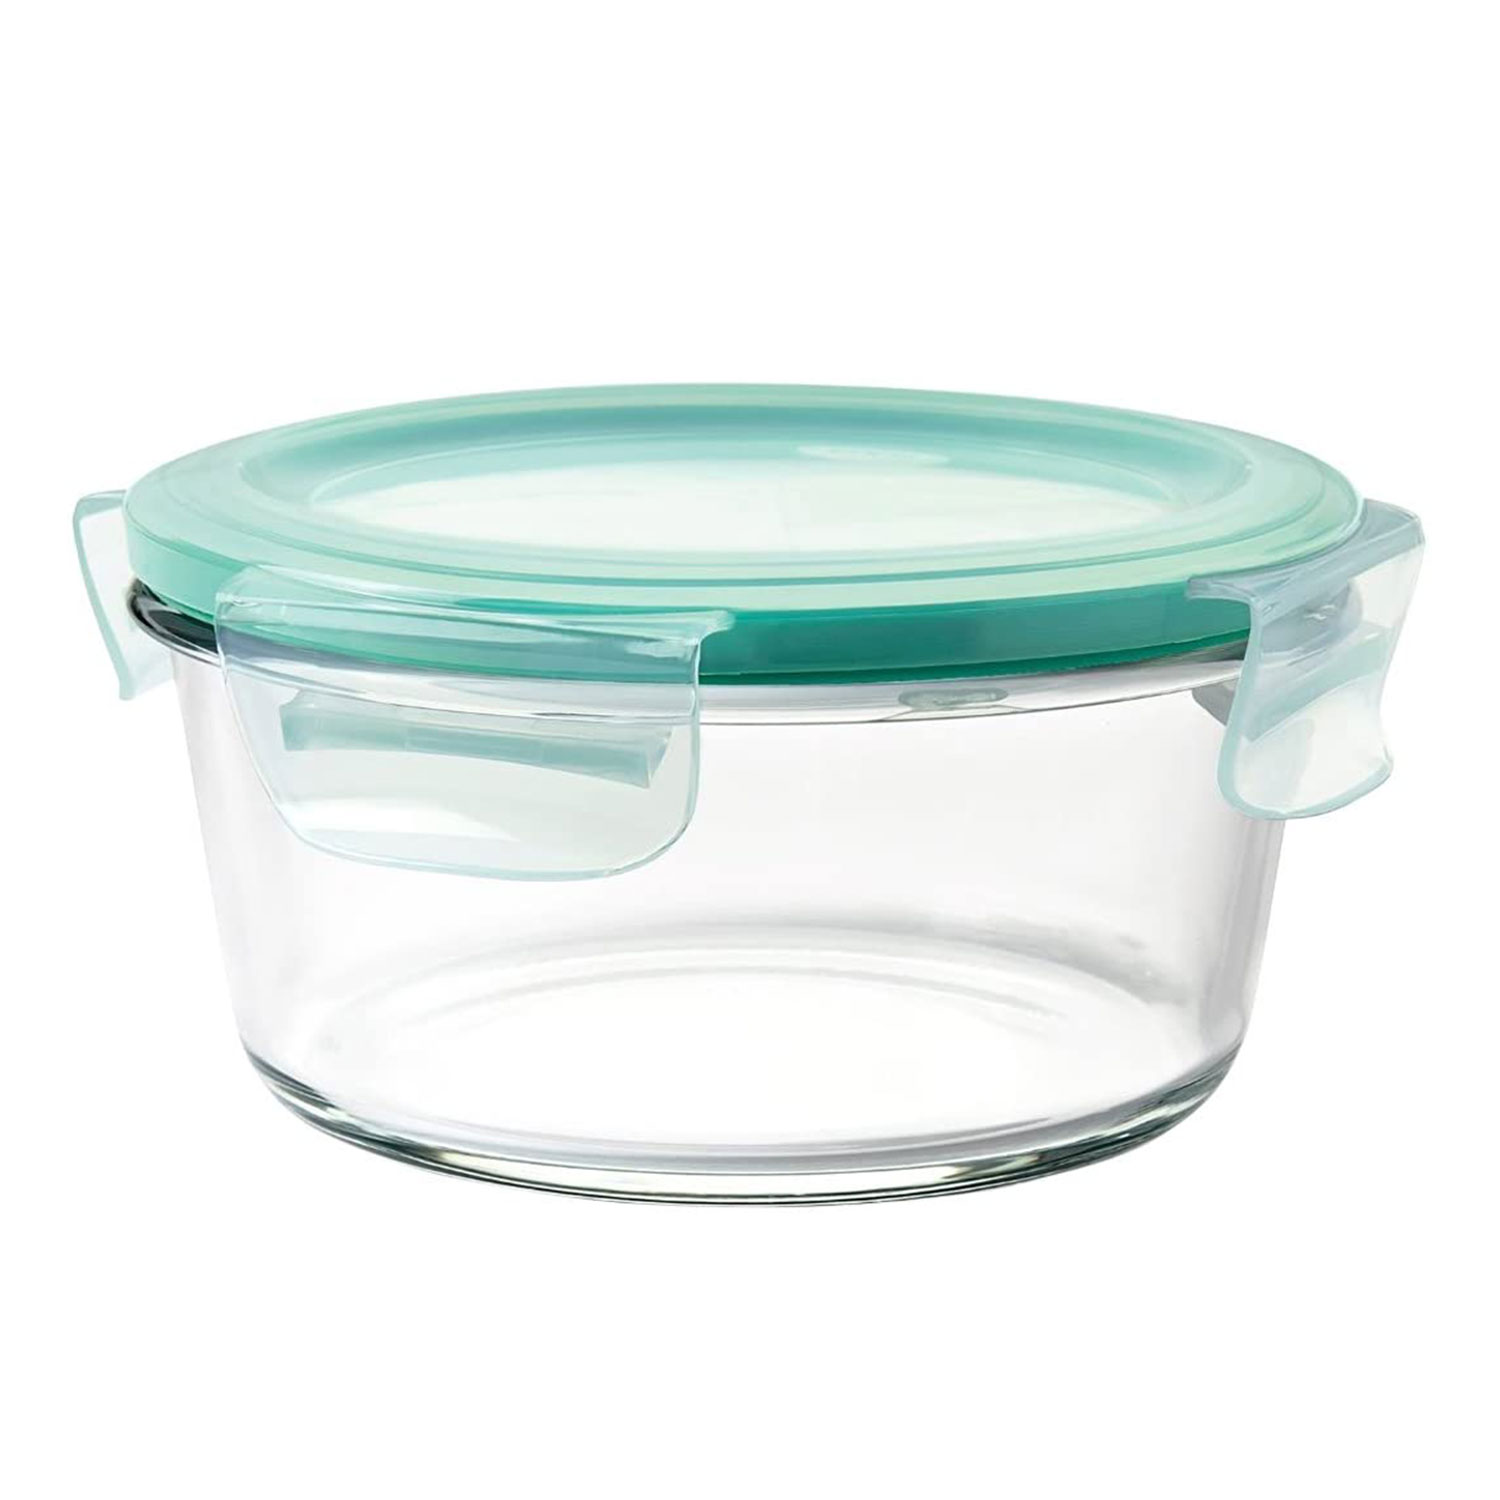 leakproof-rectangle-storage-container